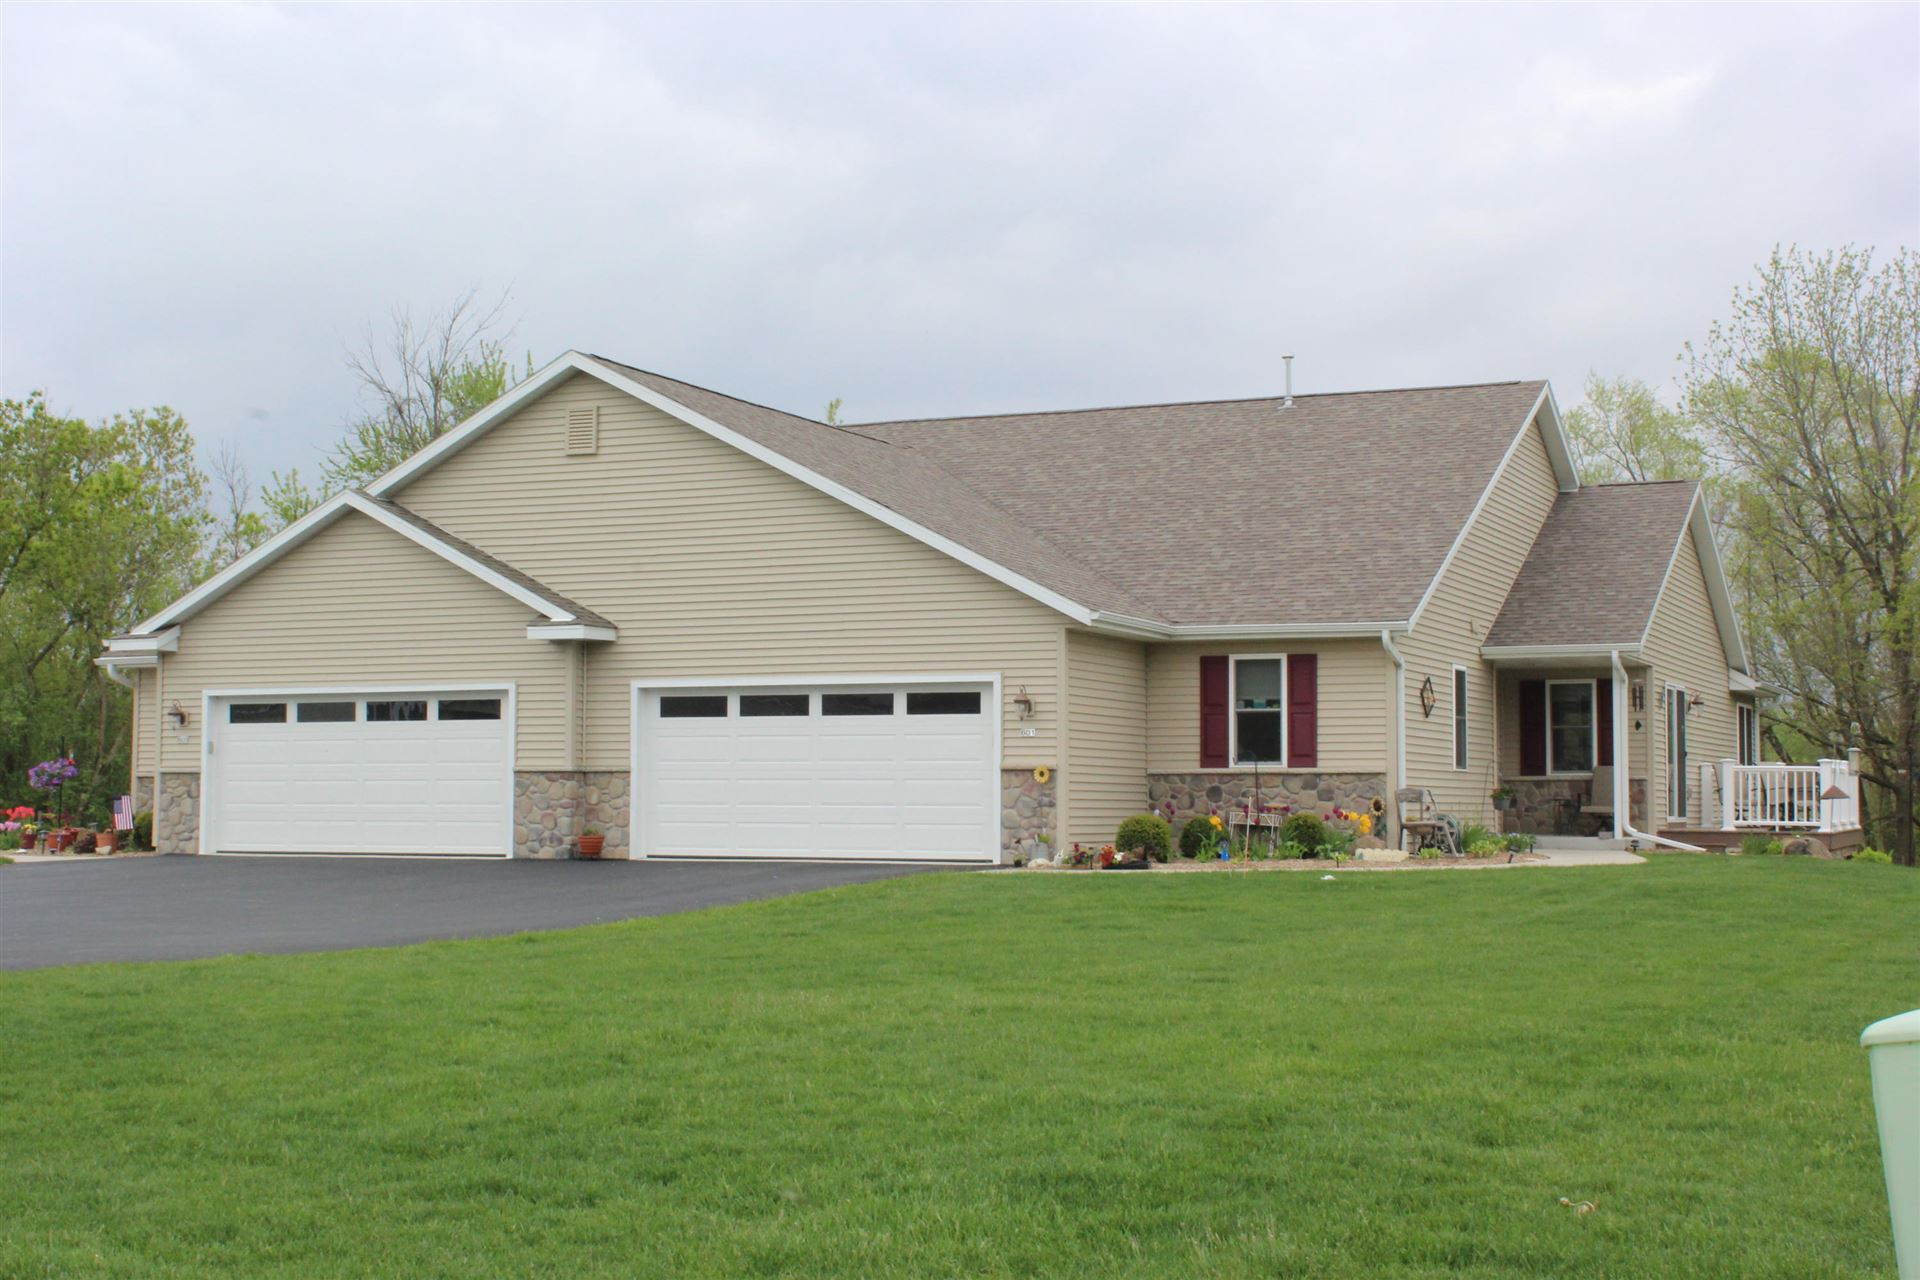 417 Trailview Crossing, Waterford, WI 53185 - #: 1690239